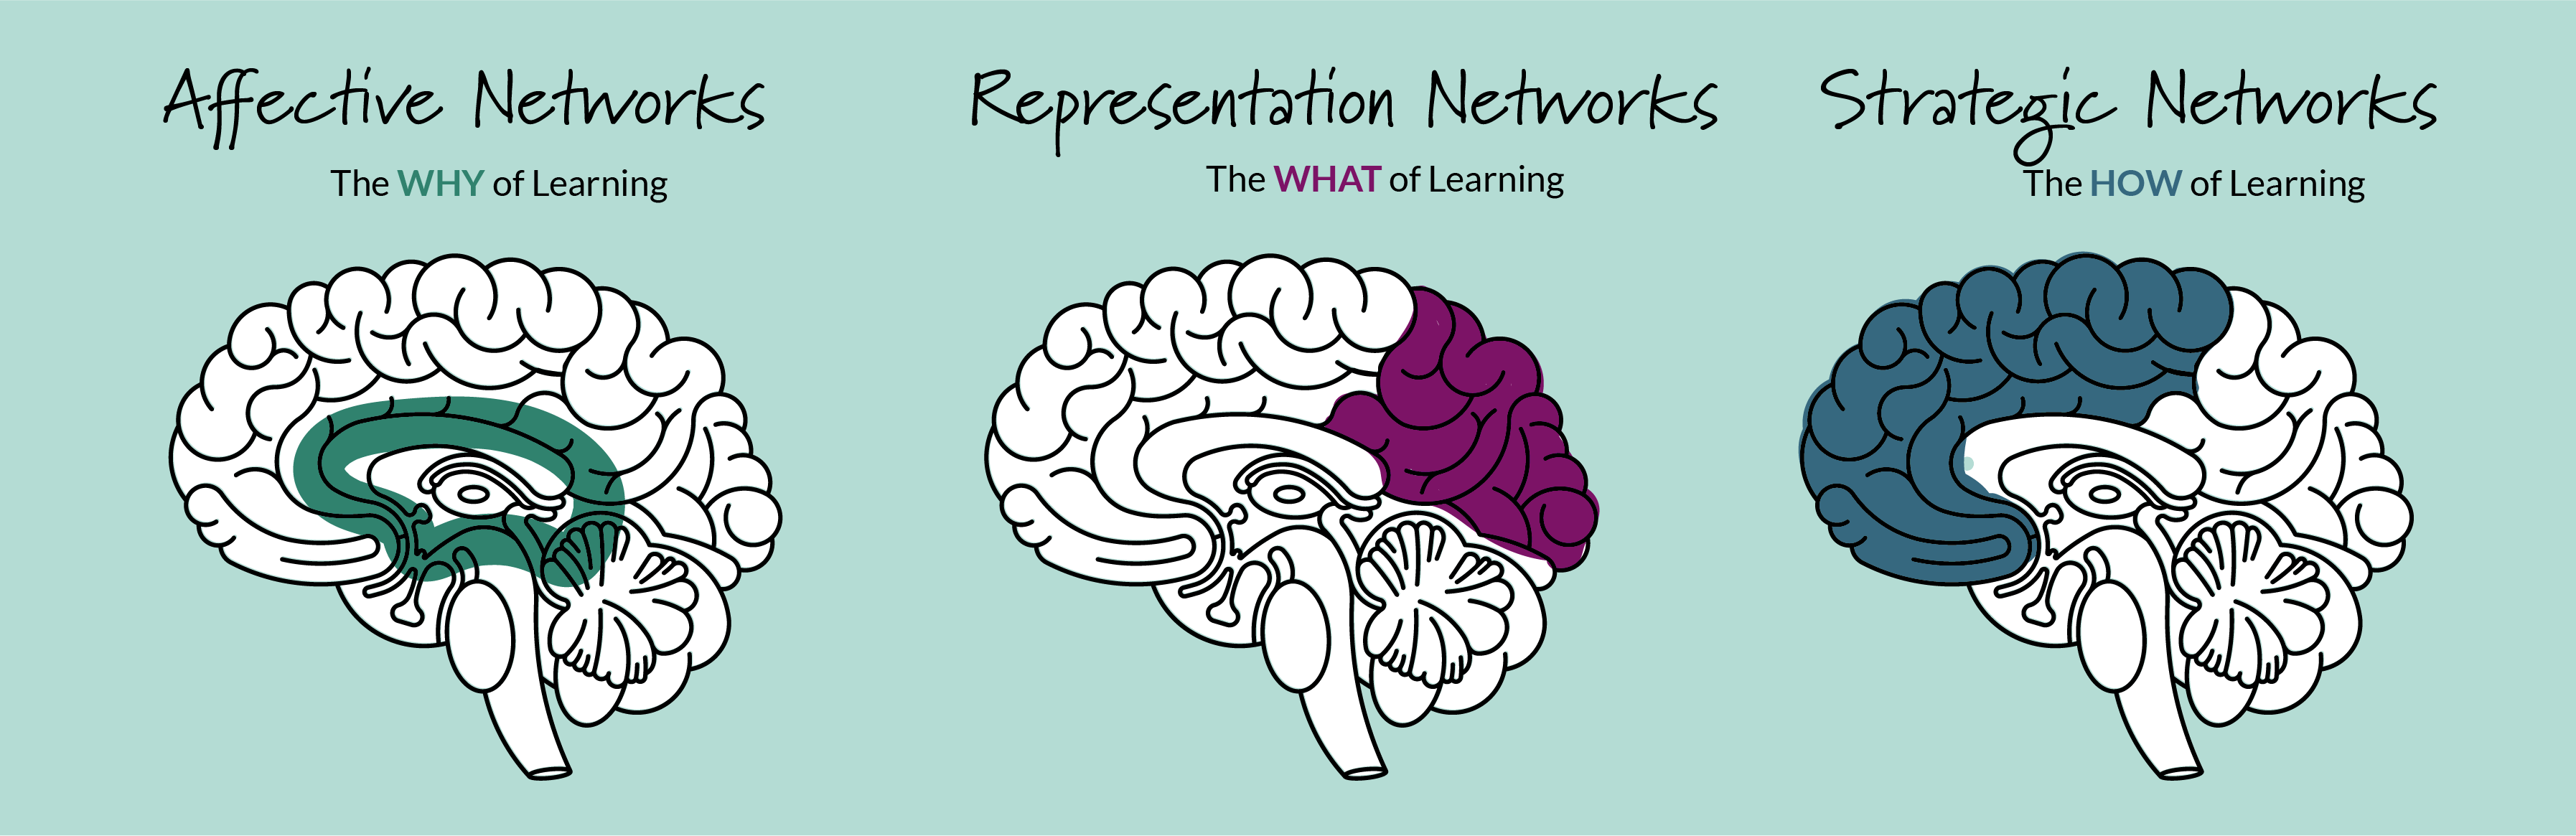 Networks of Brain - the why of learning, the what of learning, the how of learning